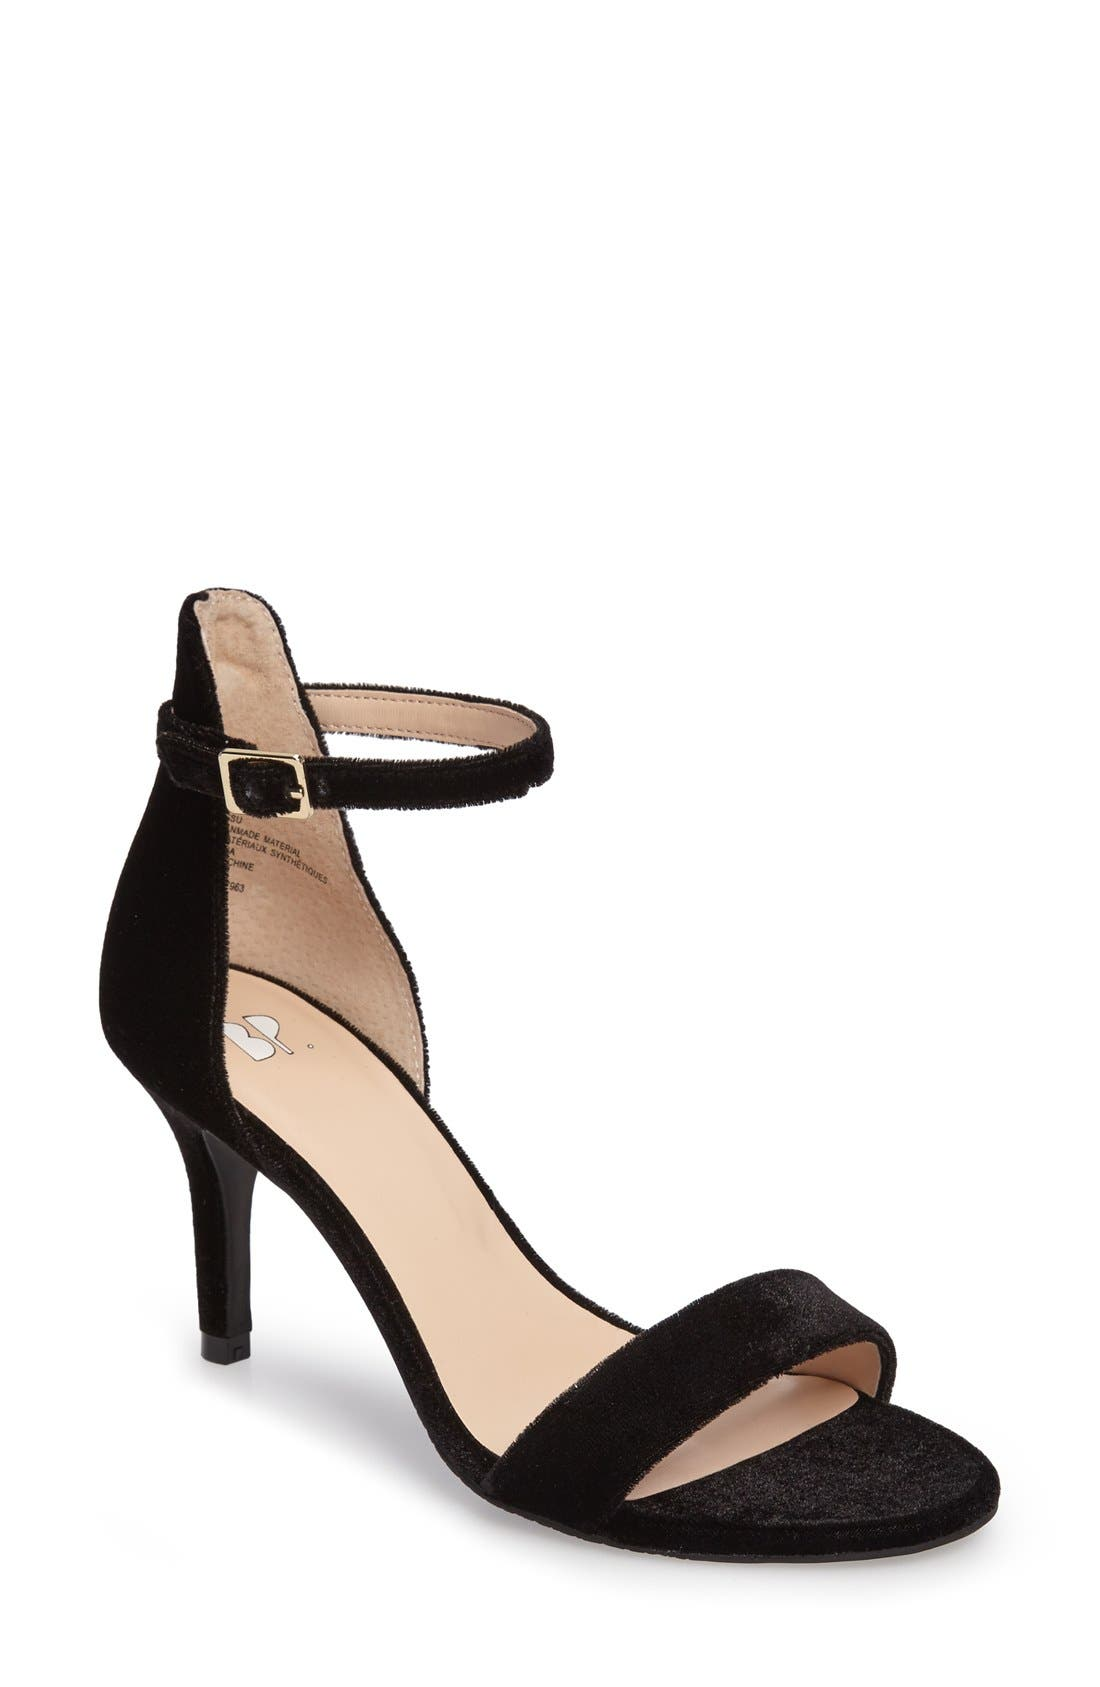 'Luminate' Open Toe Dress Sandal,                             Main thumbnail 18, color,